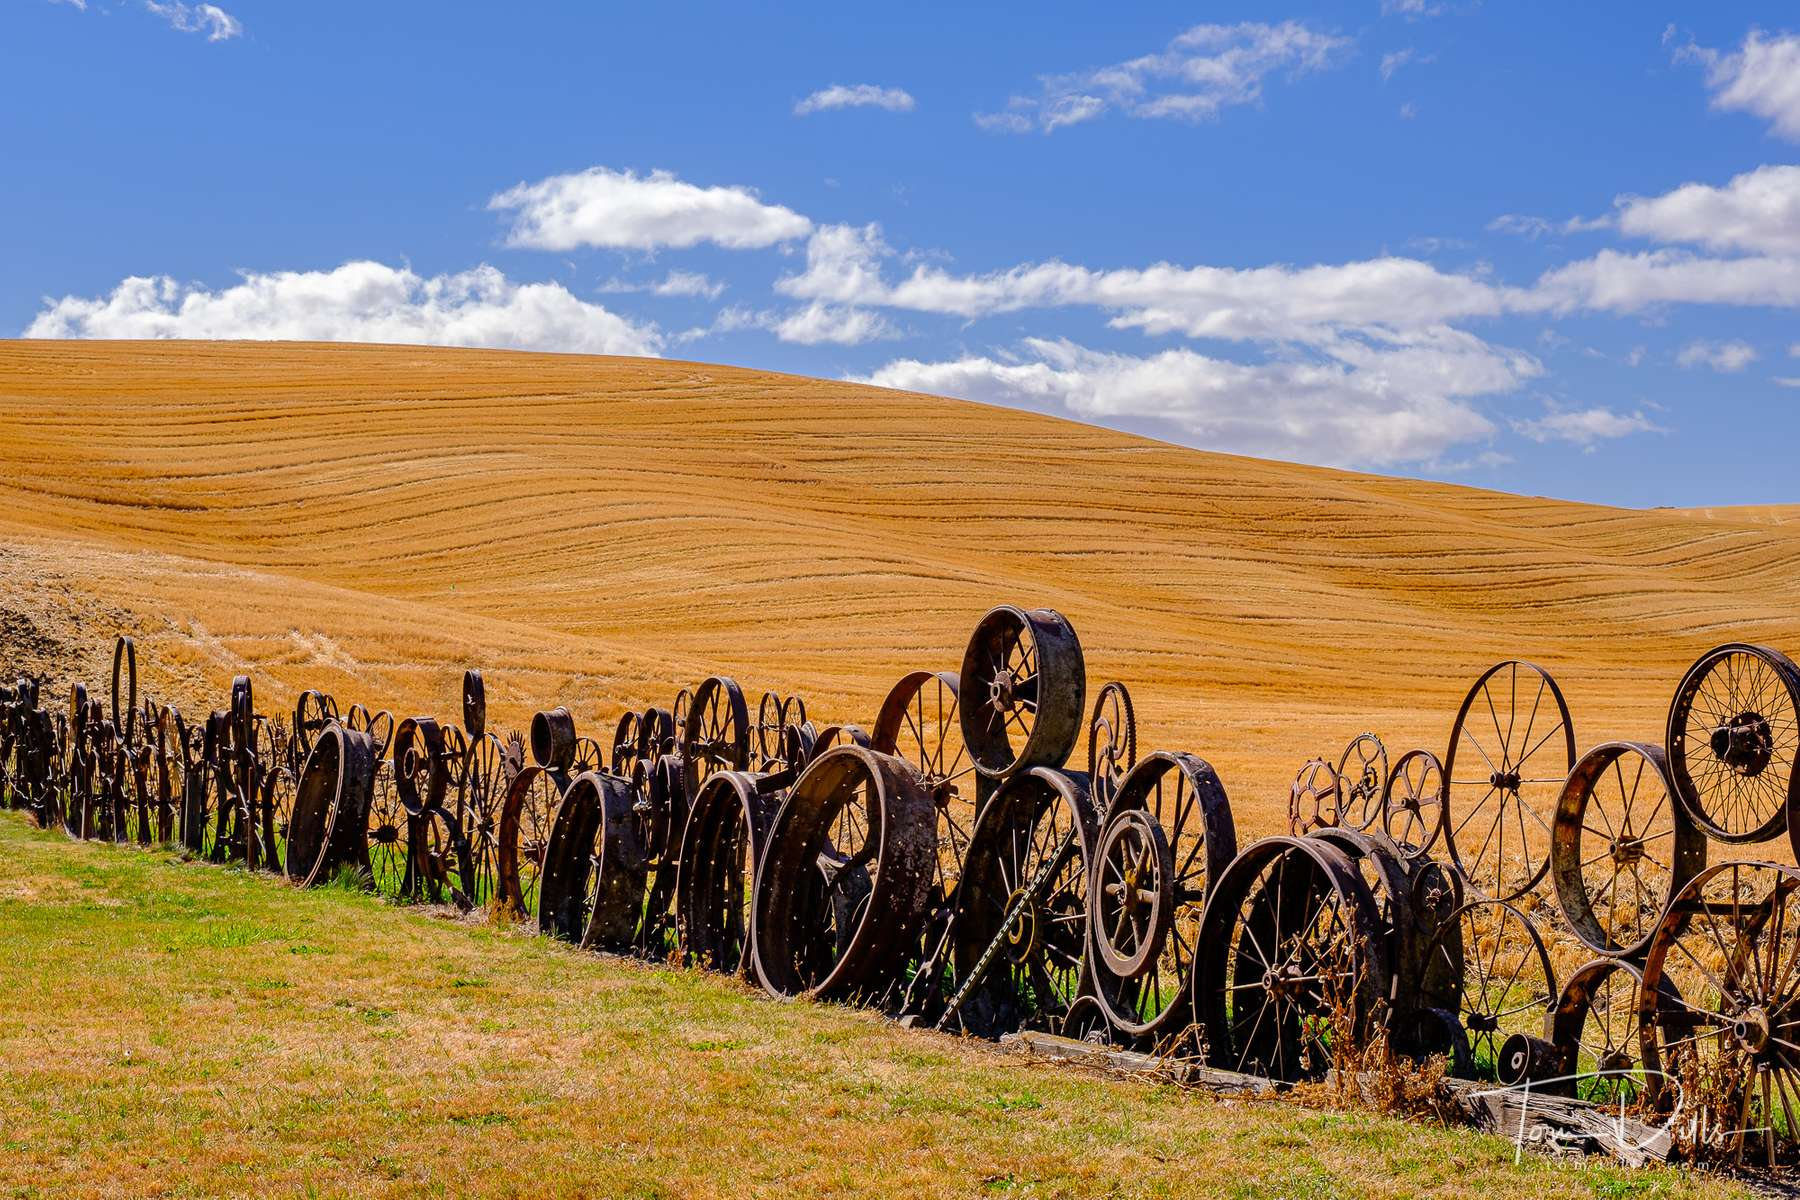 {quote}Wheel Fence{quote} at the Dahmen Barn along US-195 in Uniontown, Washington